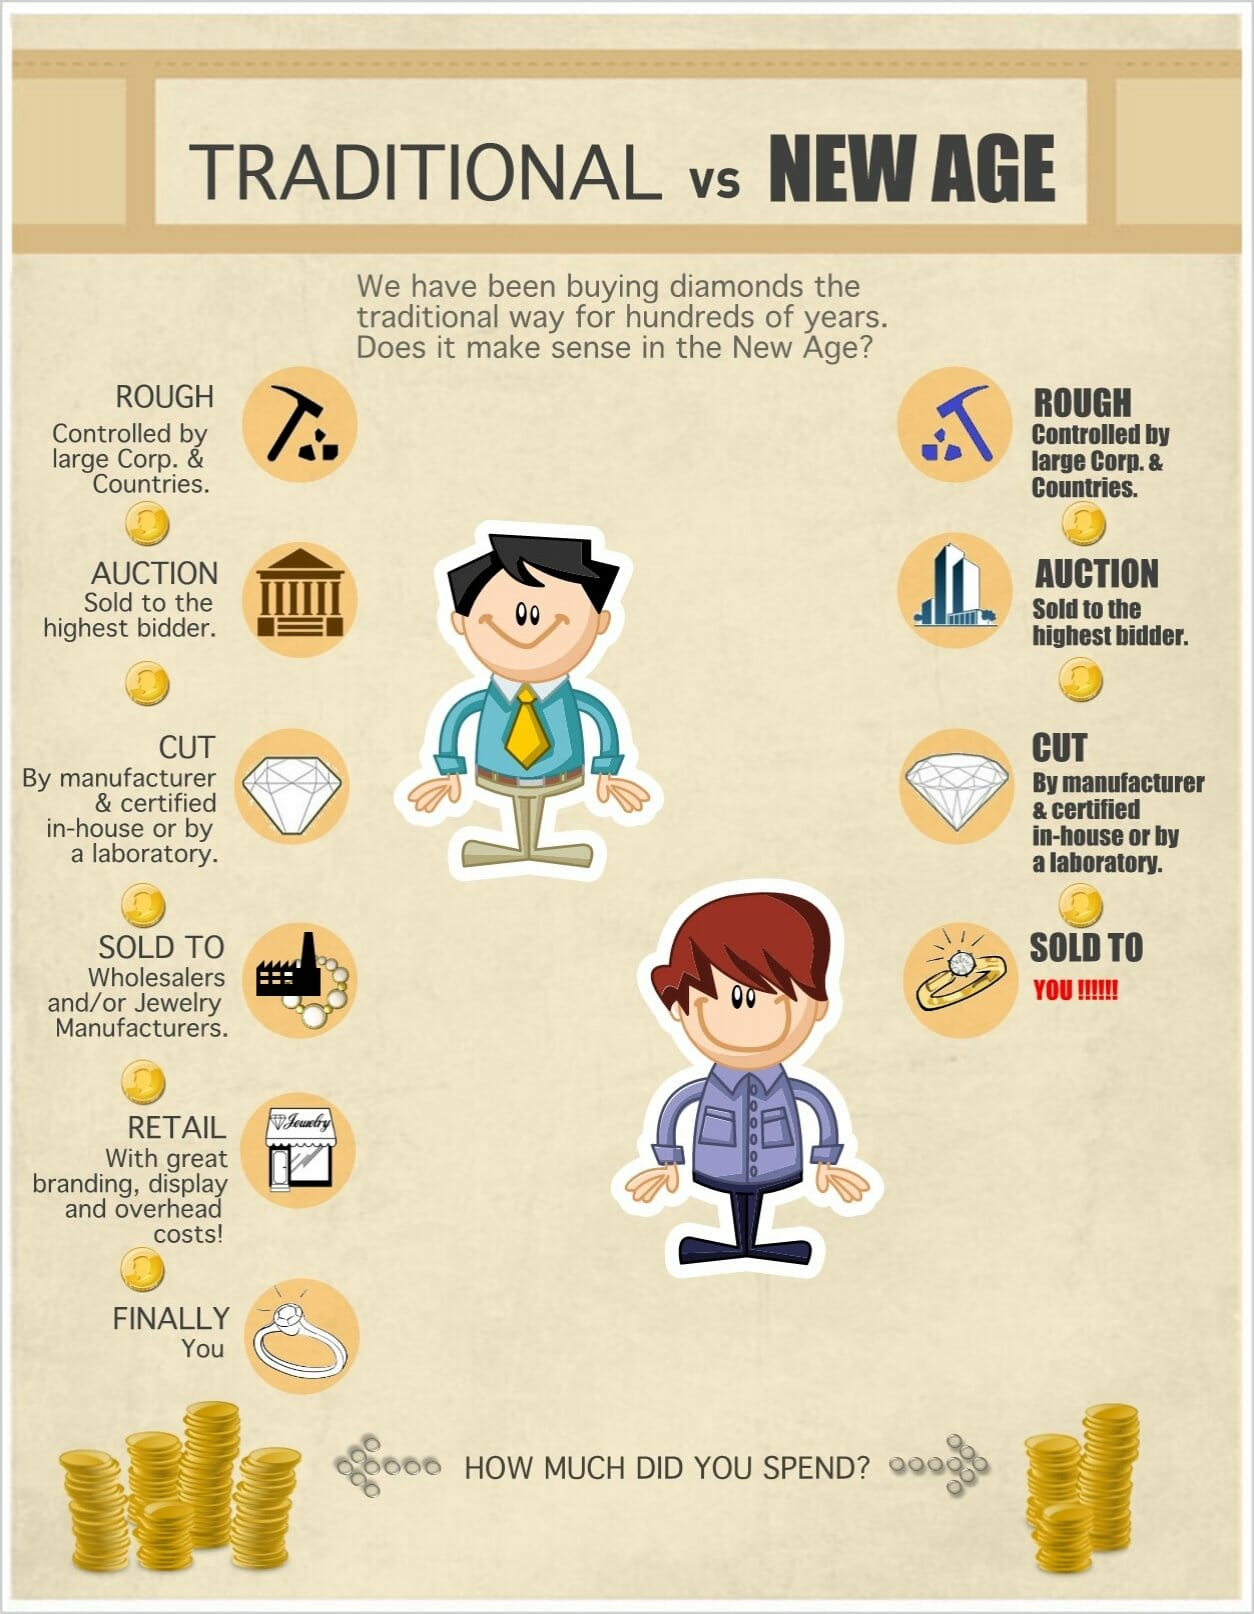 Cheapest diamond in Bangkok - a diagram explaining difference between traditional retailer vs new age retailer